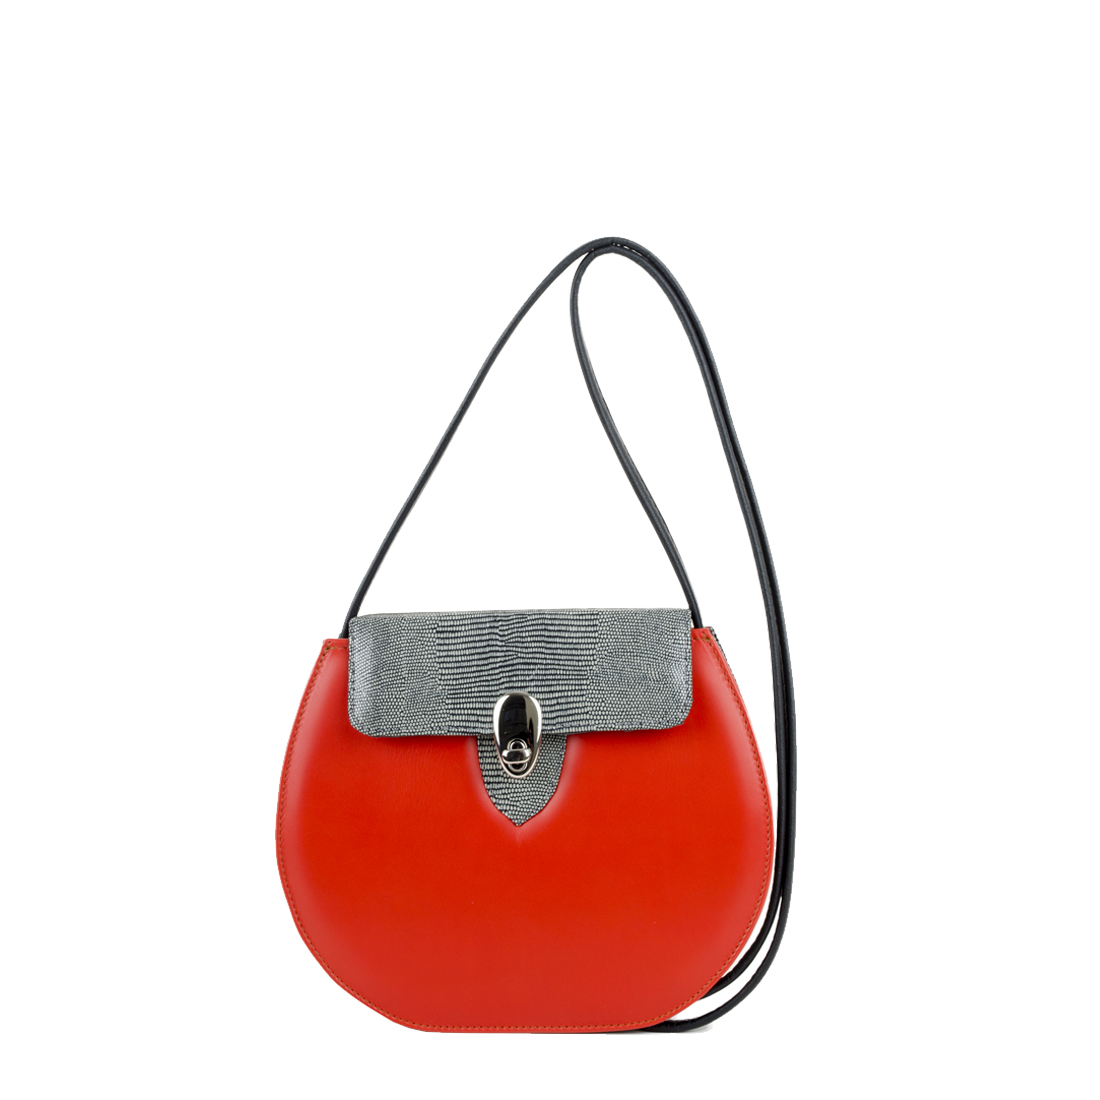 Mae Vivid Orange Leather Shoulder Bag